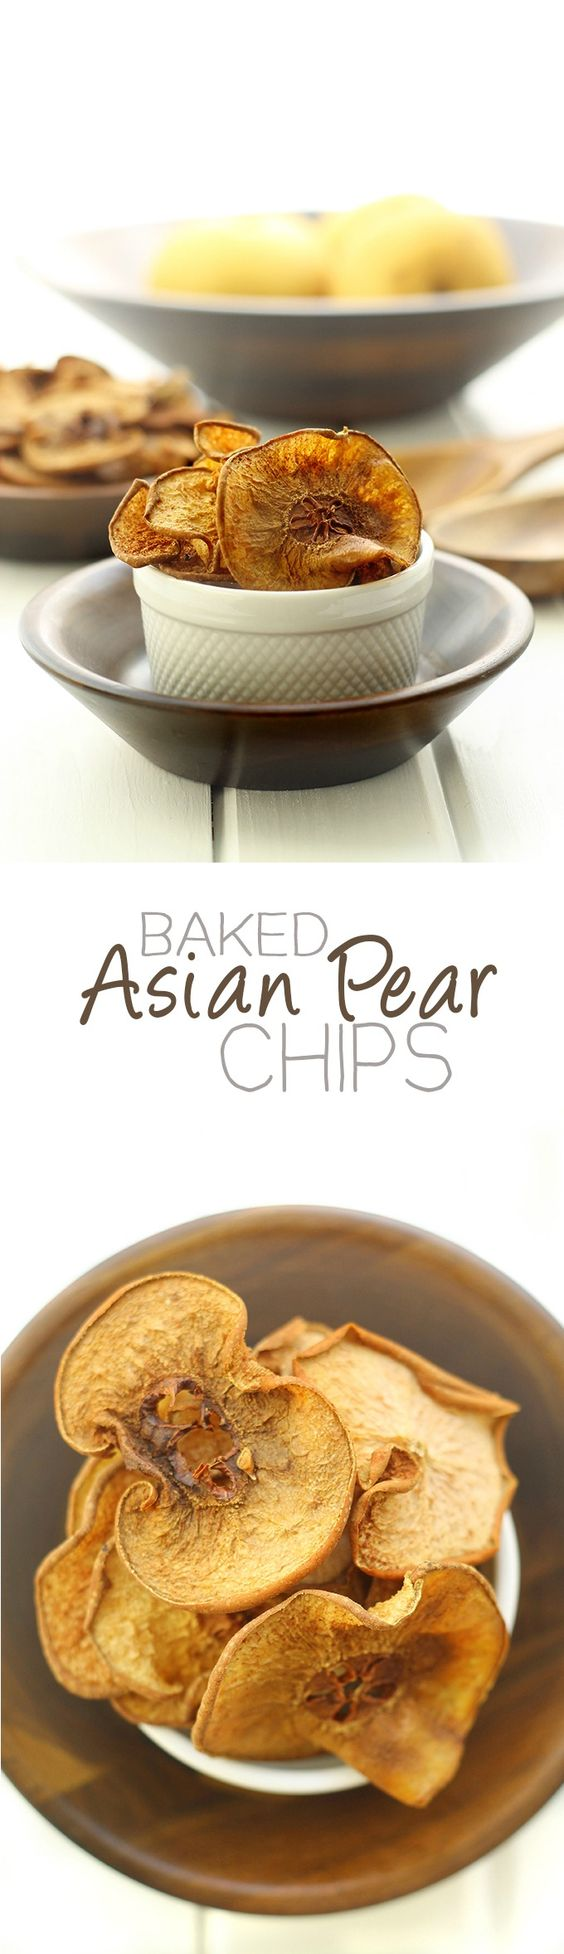 Baked Asian Pear Chips - a sweet and crunchy Fall snack with no dehydrator required! // thehealthymaven.com #healthy #recipe